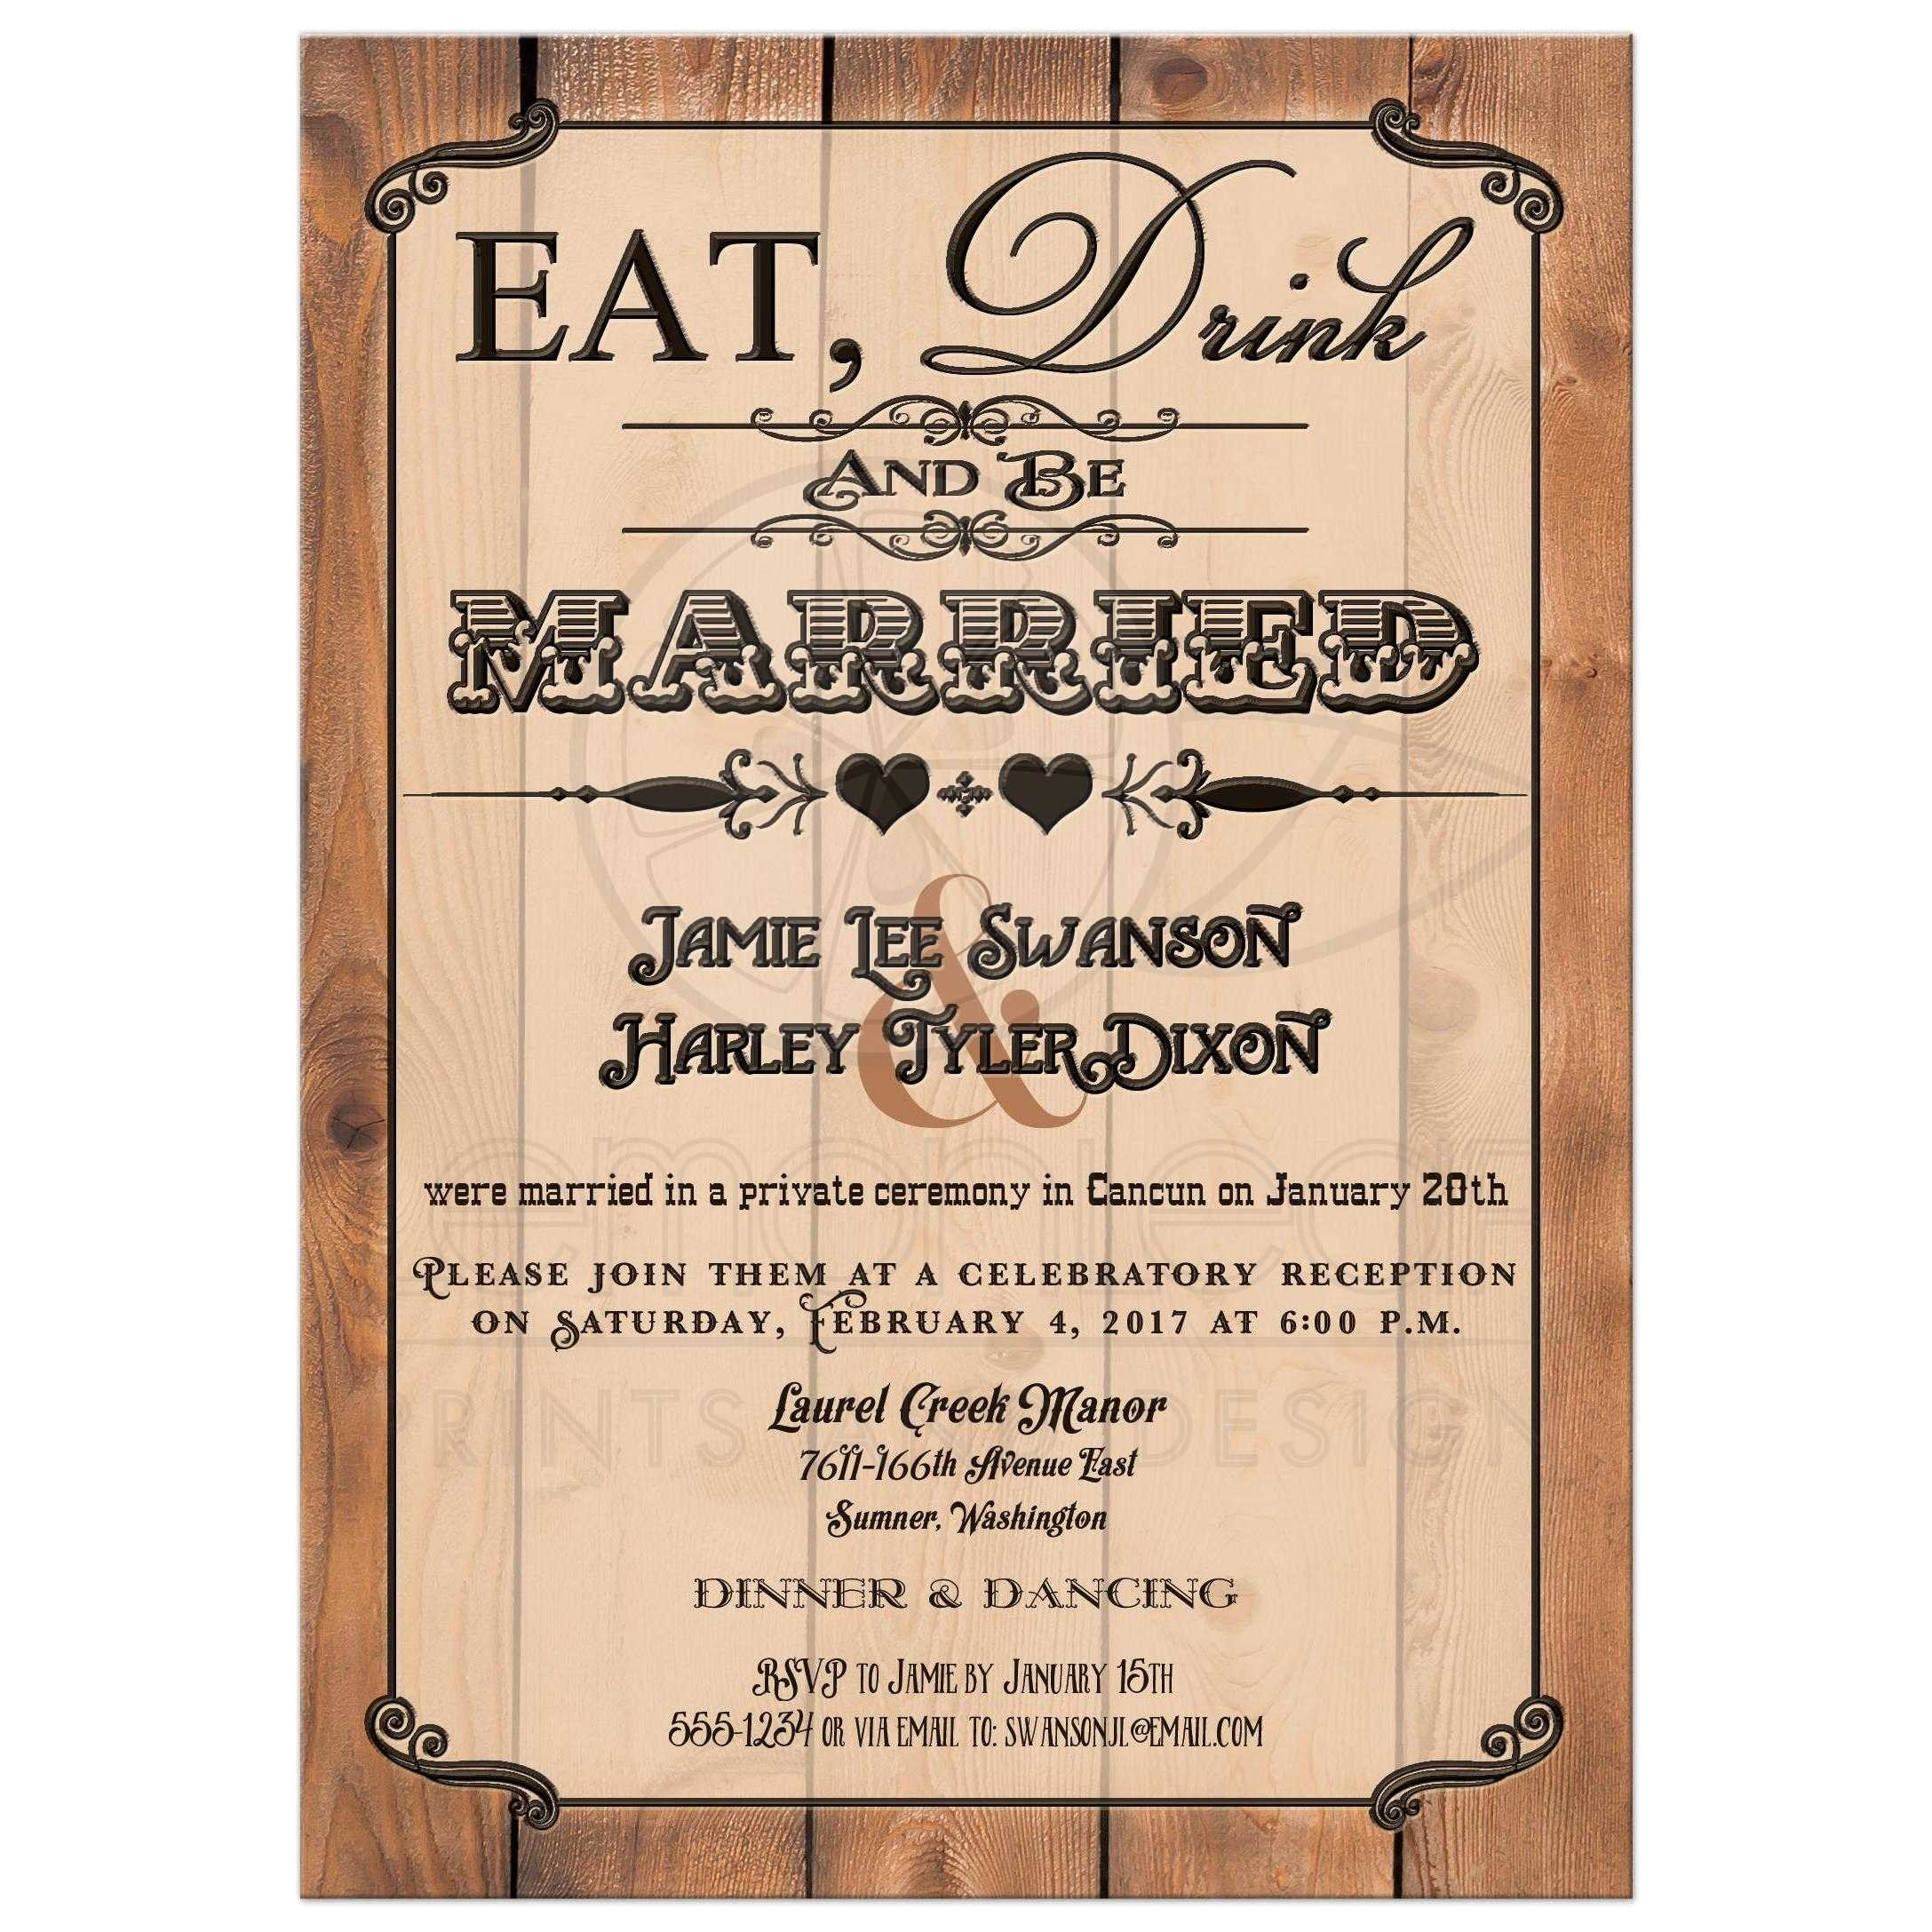 post wedding reception only invitation eat drink and be married faux woodburned vintage poster look